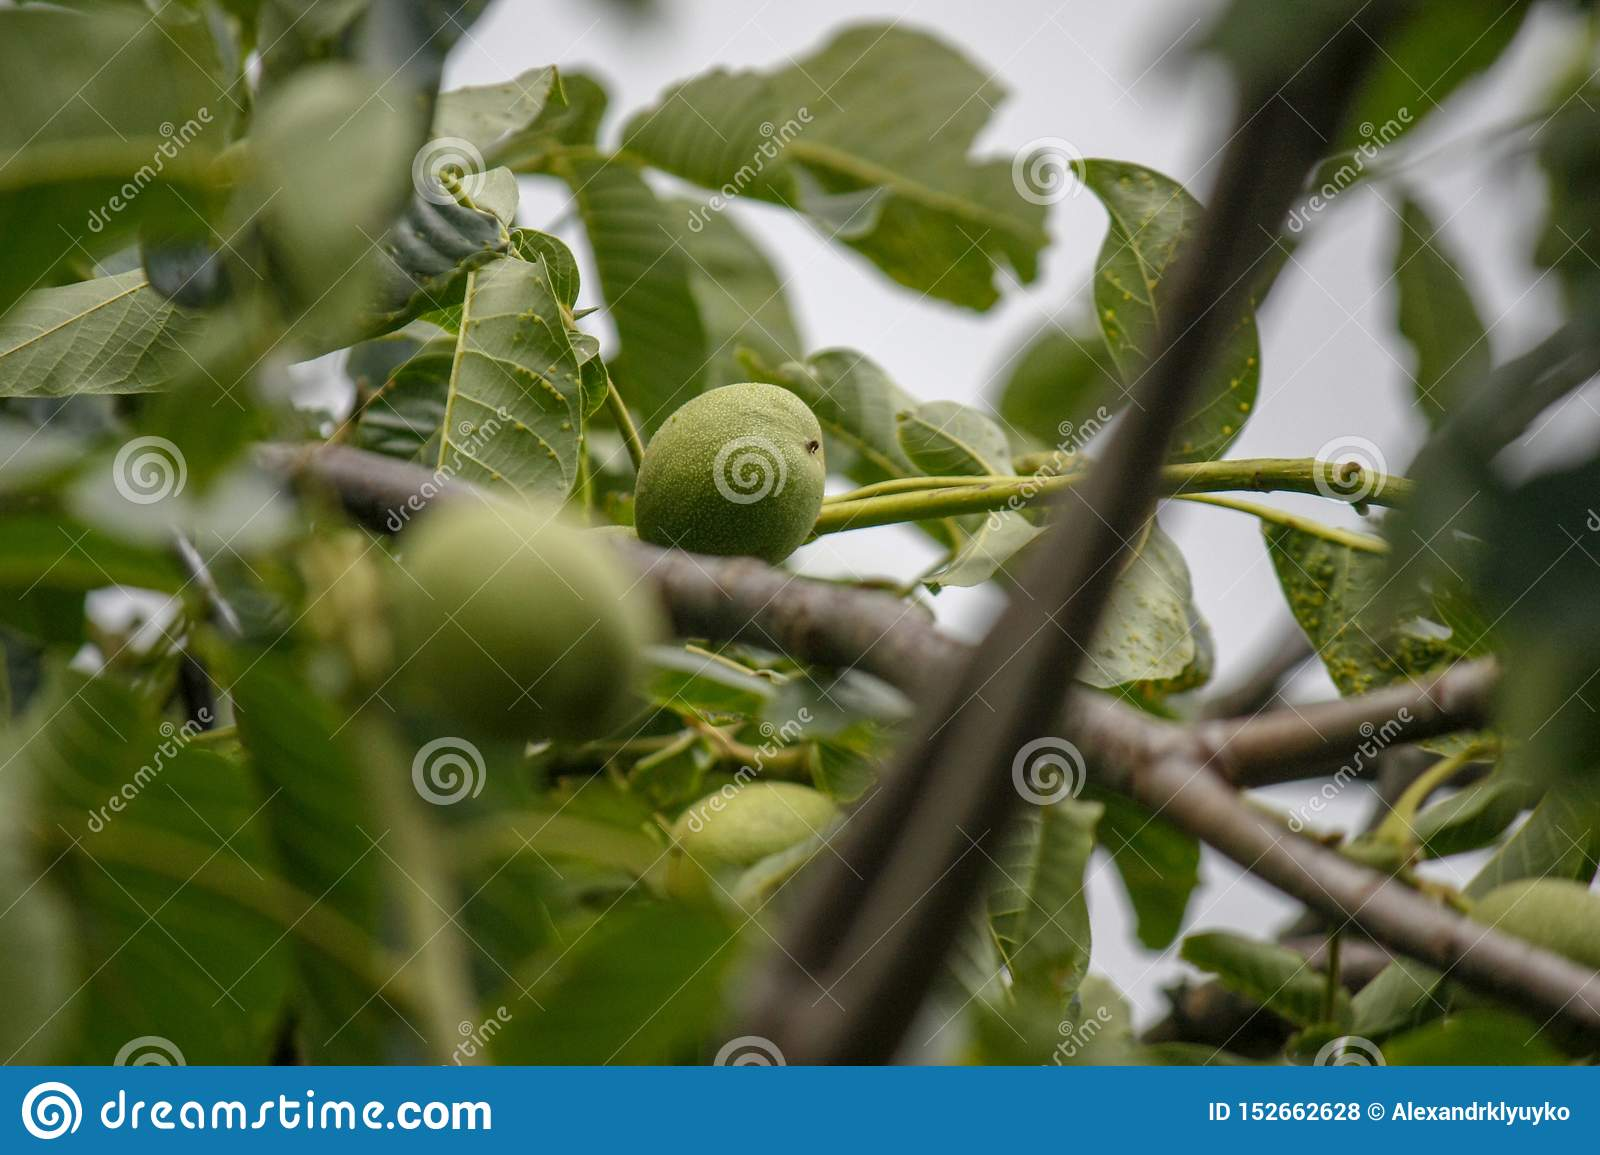 Black Walnut Tree Juglans Nigra With A Photo Of The End Of